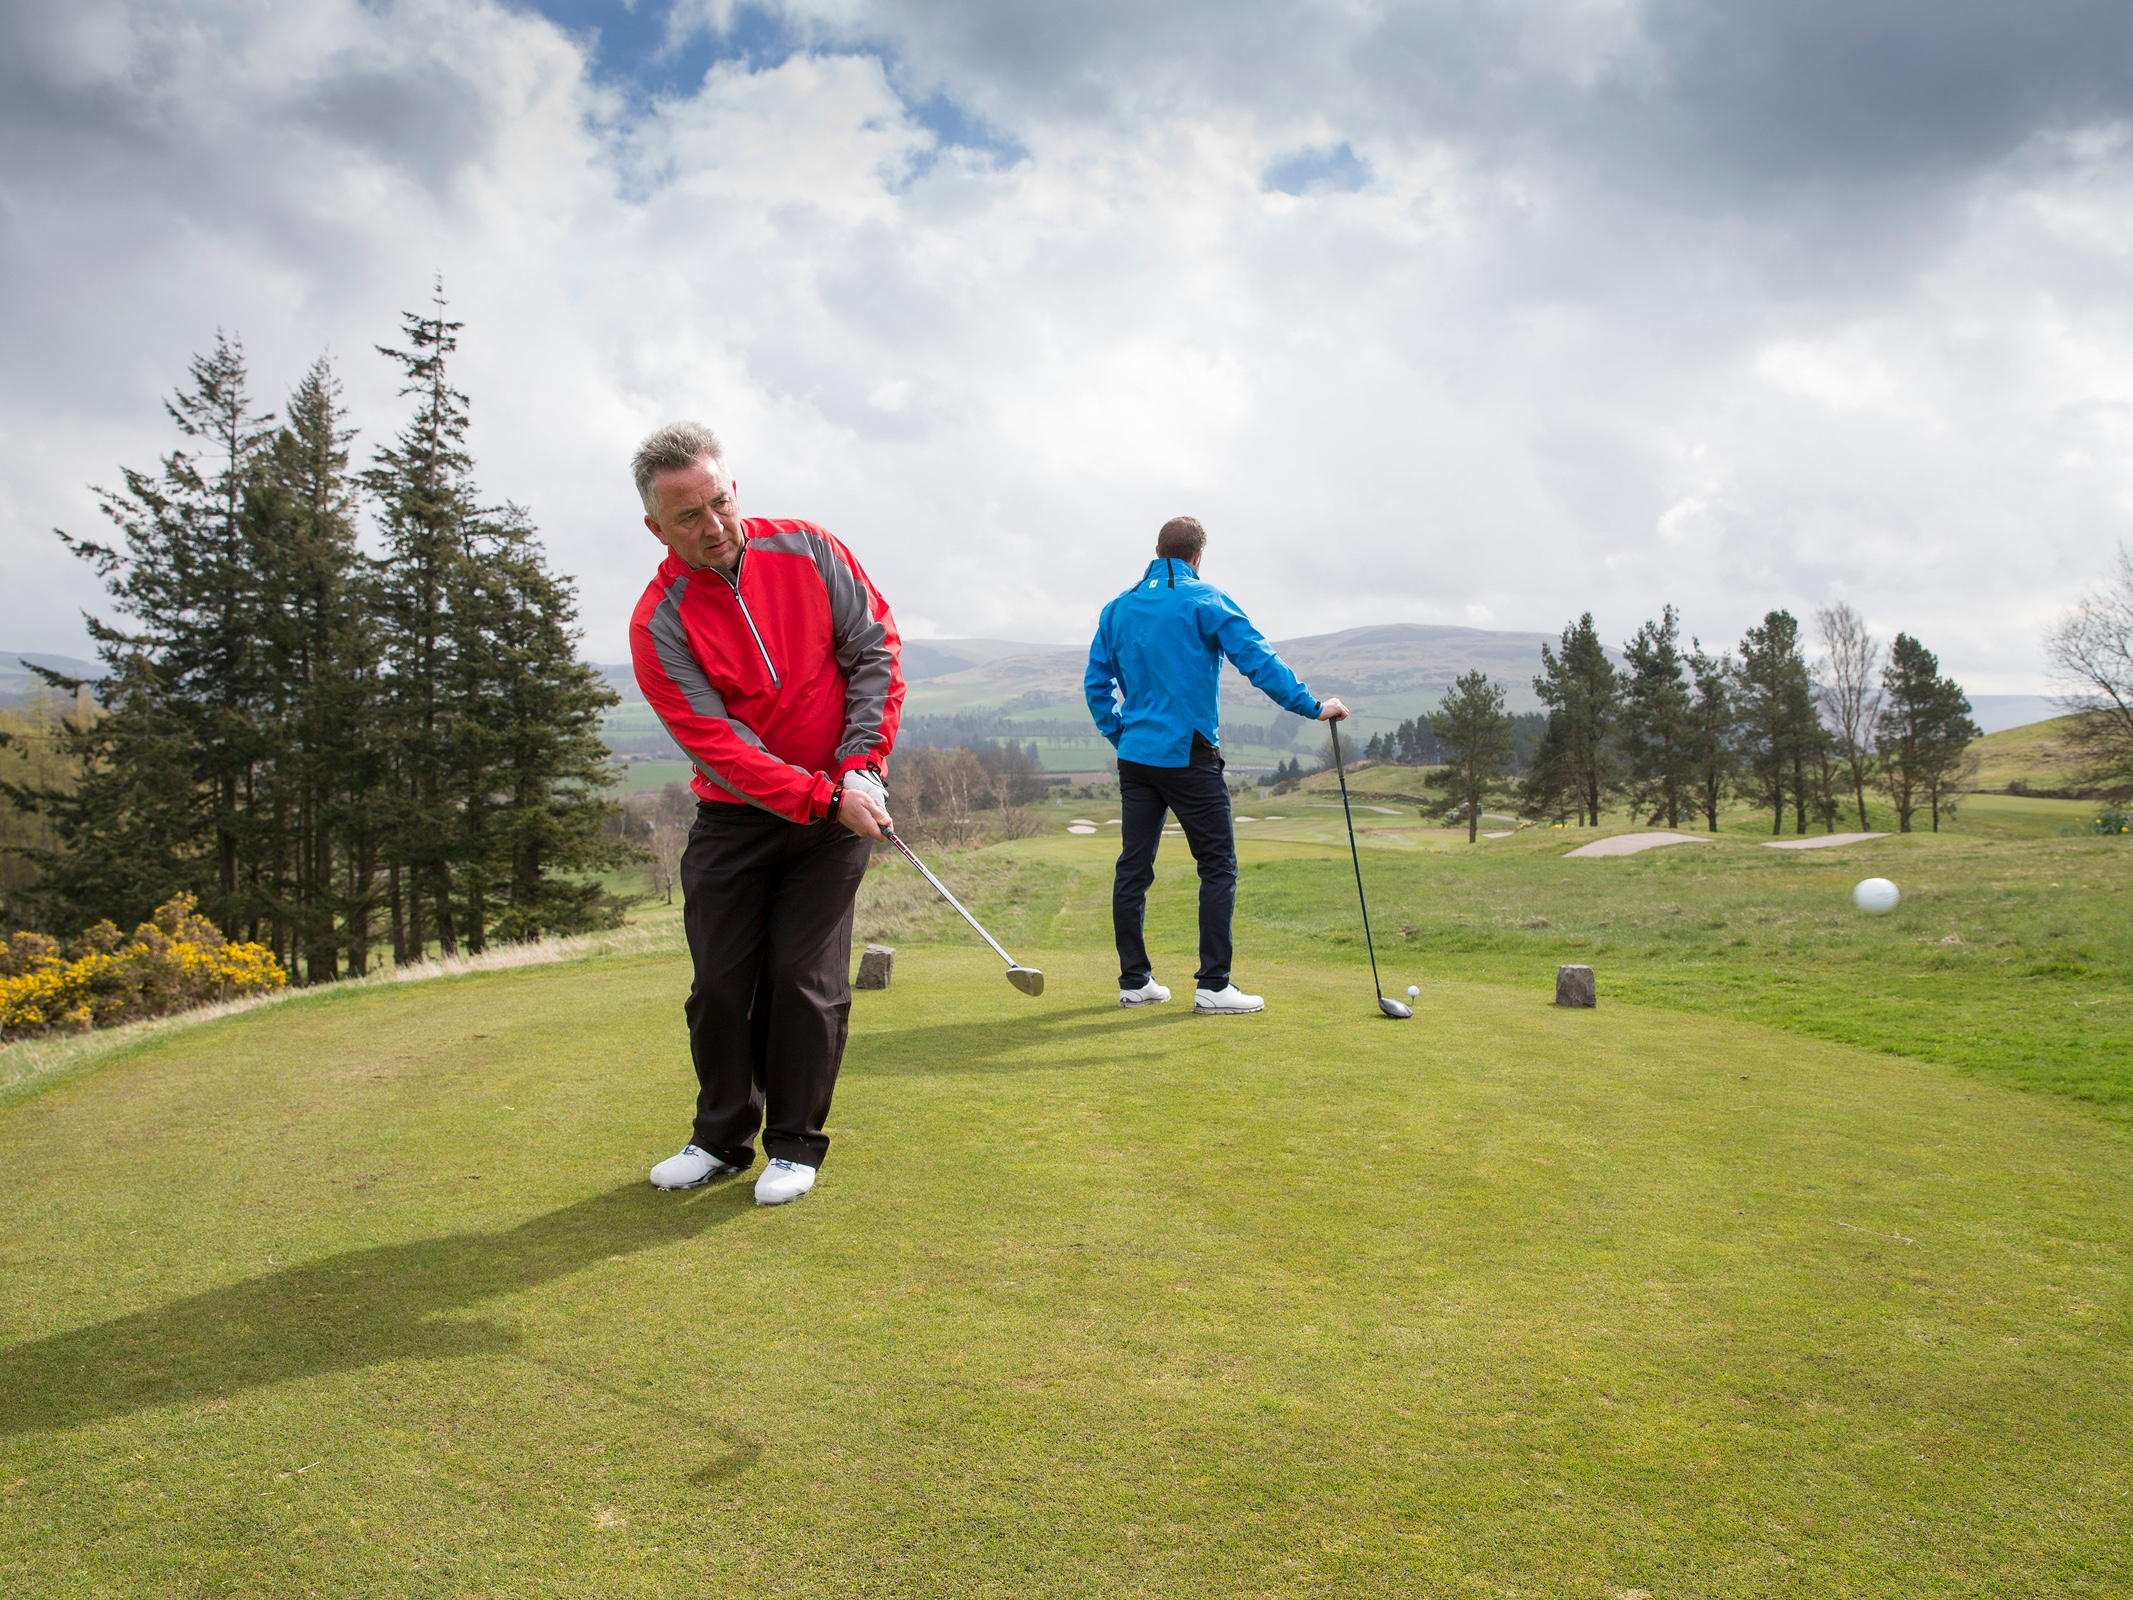 Practice on the course: Rules of Golf - Advice on what you ...